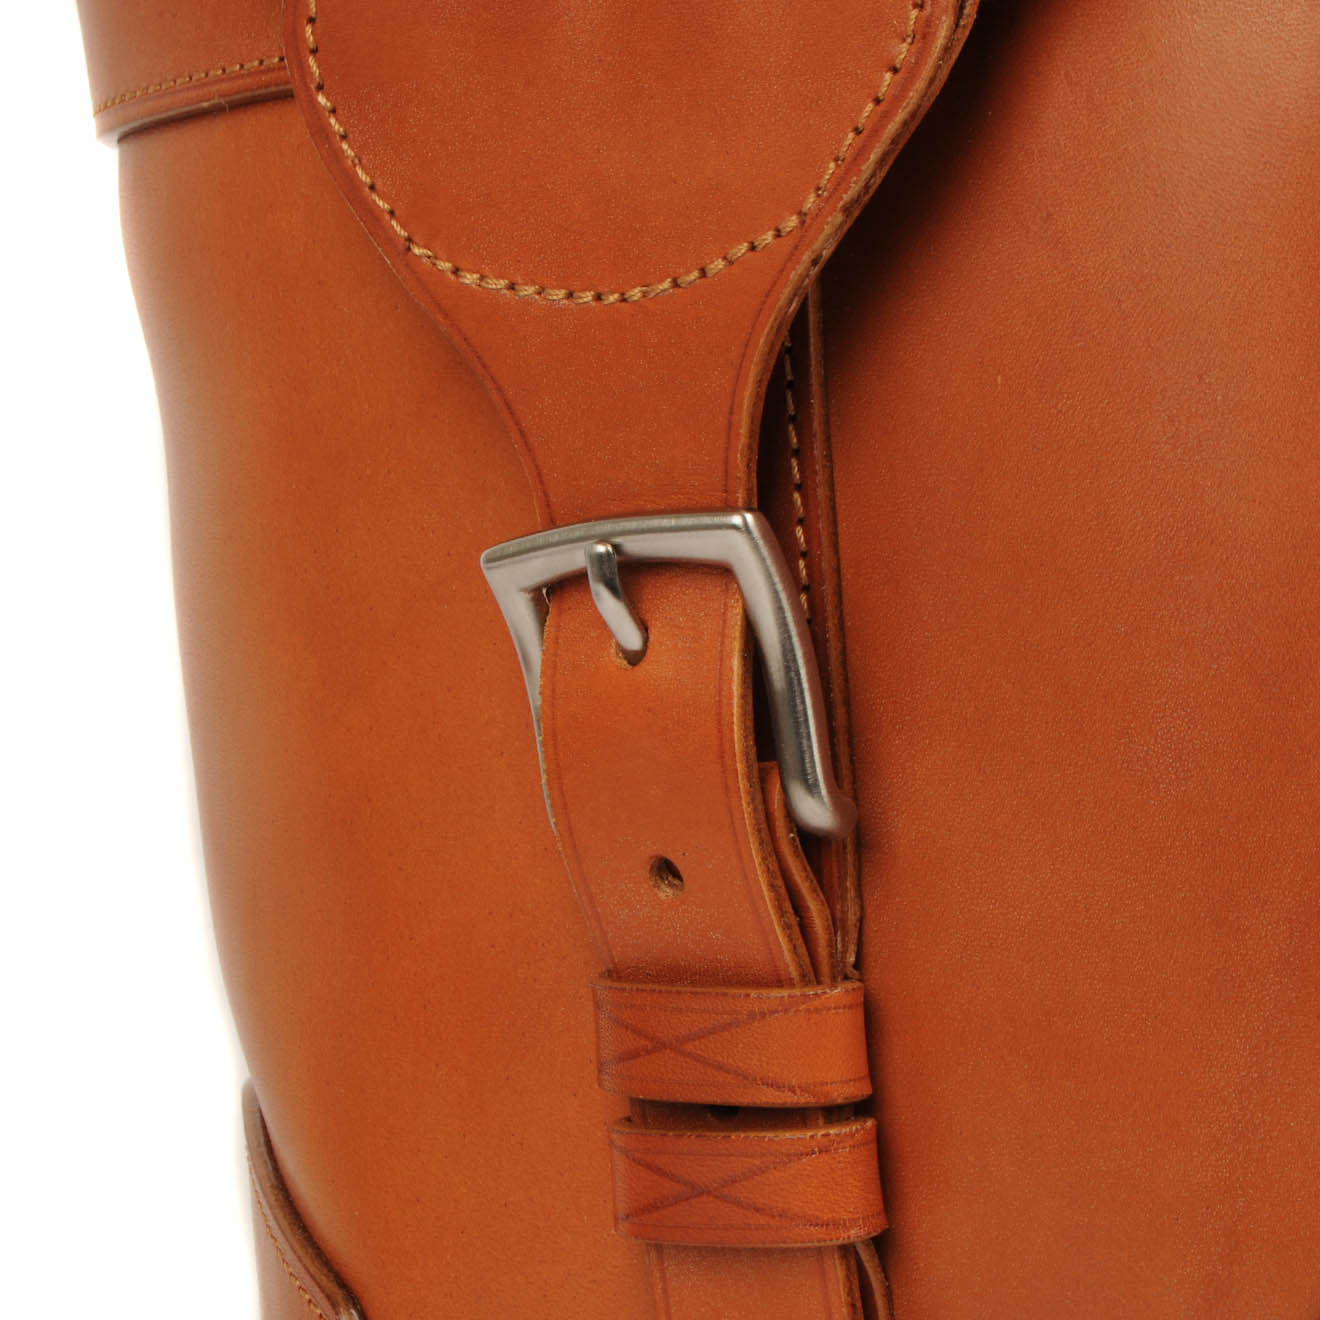 James Purdey 24HR Leather Bag London Tan - The Sporting Lodge